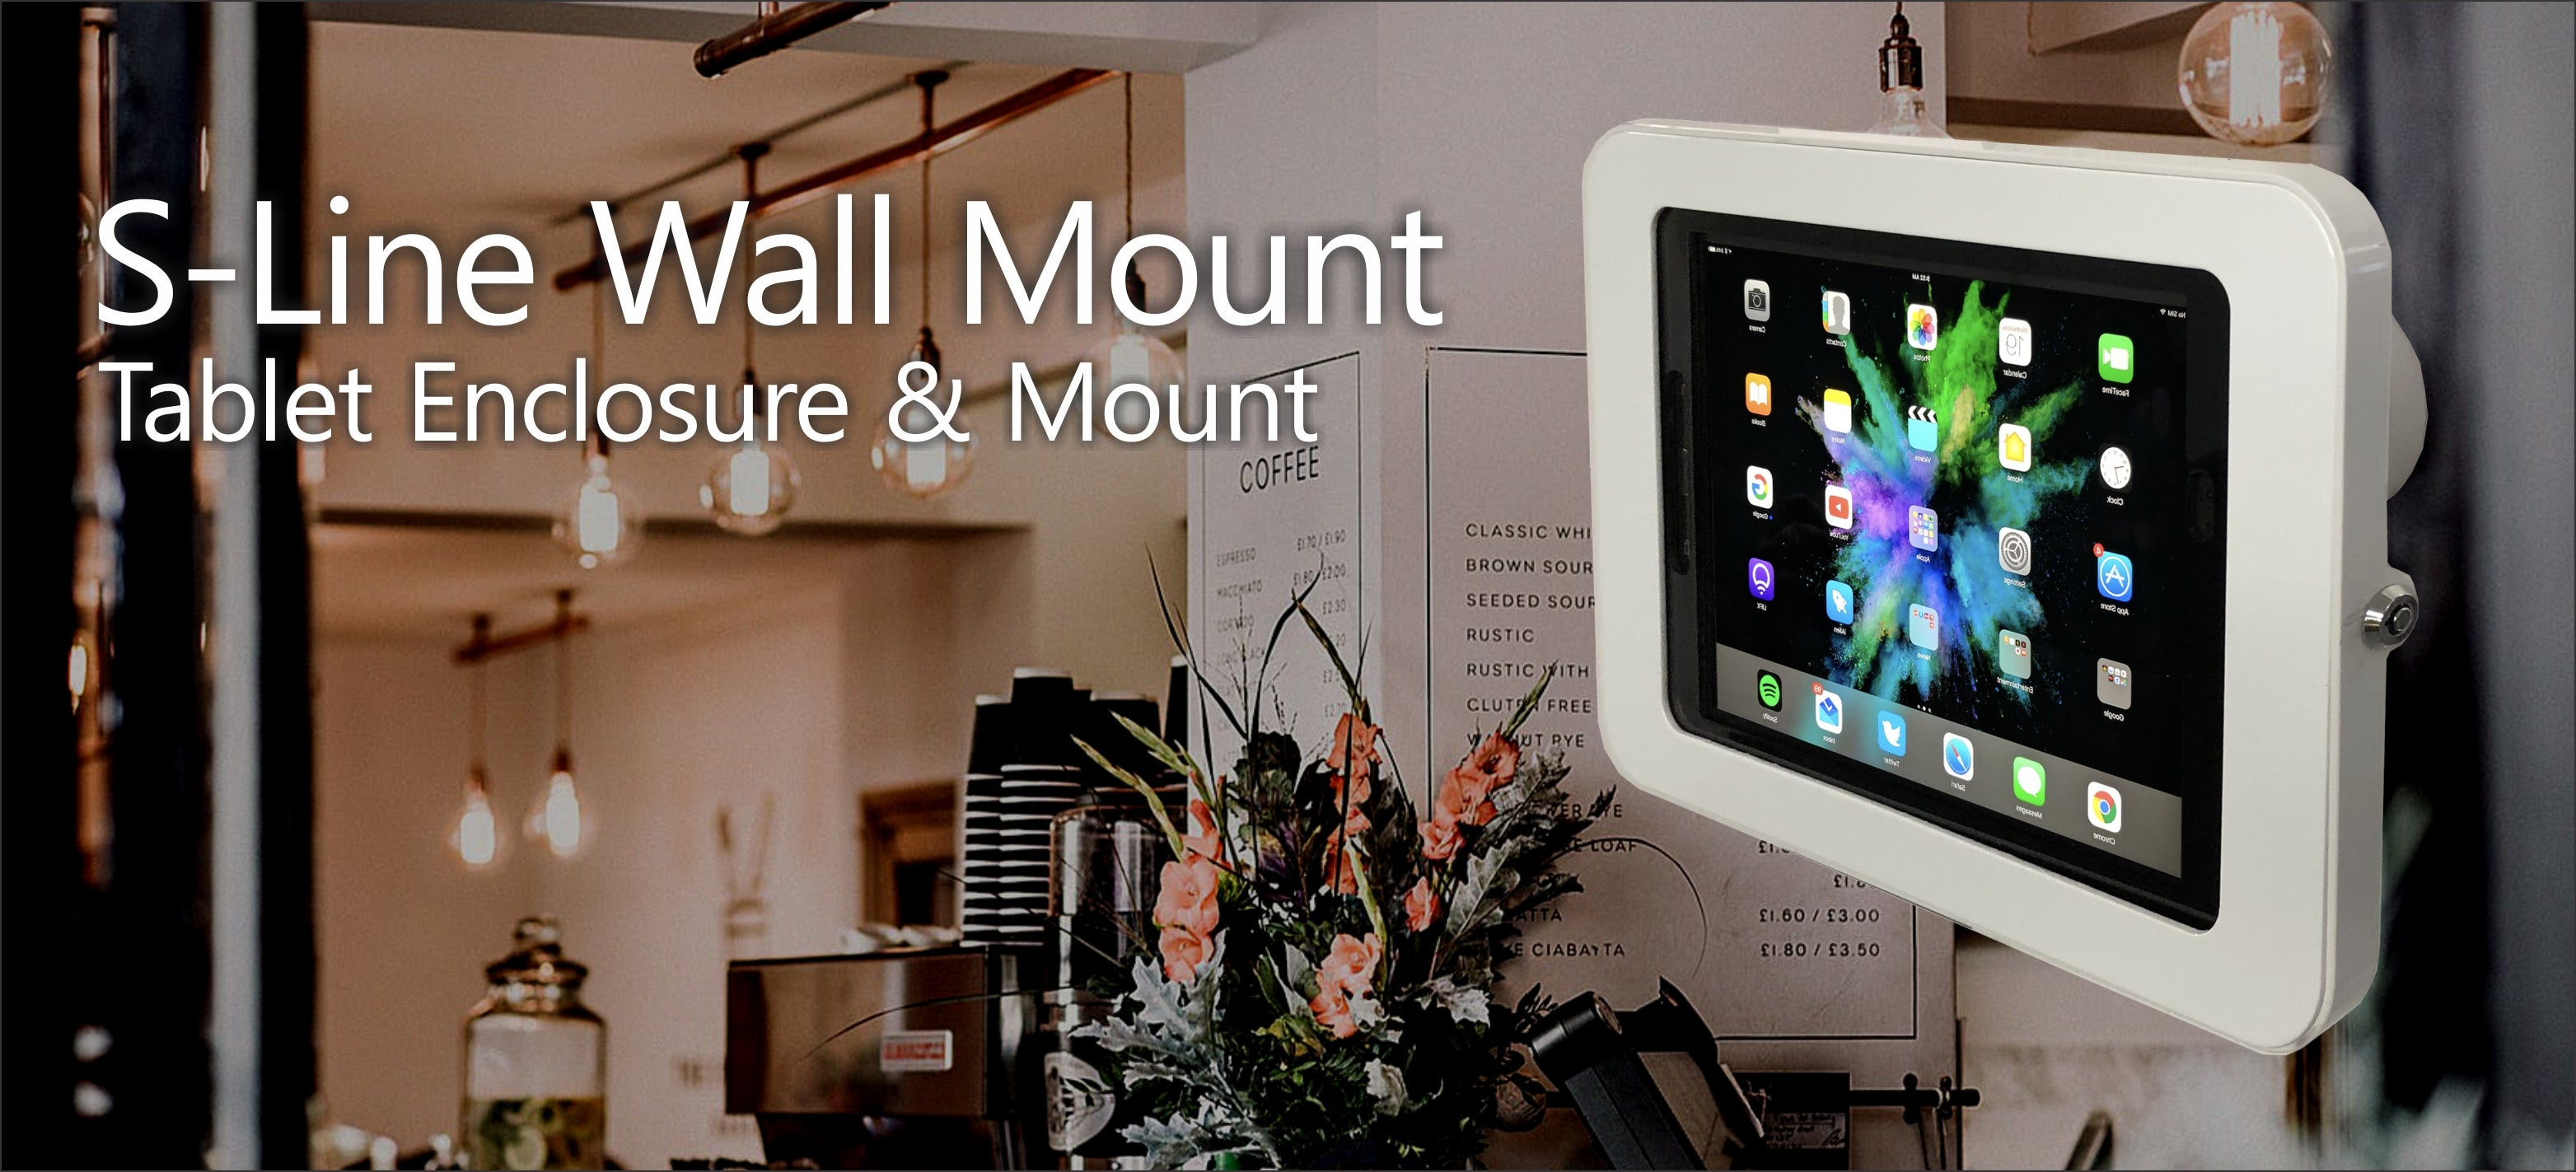 S Line Wall Mount tablet enclosure and mount